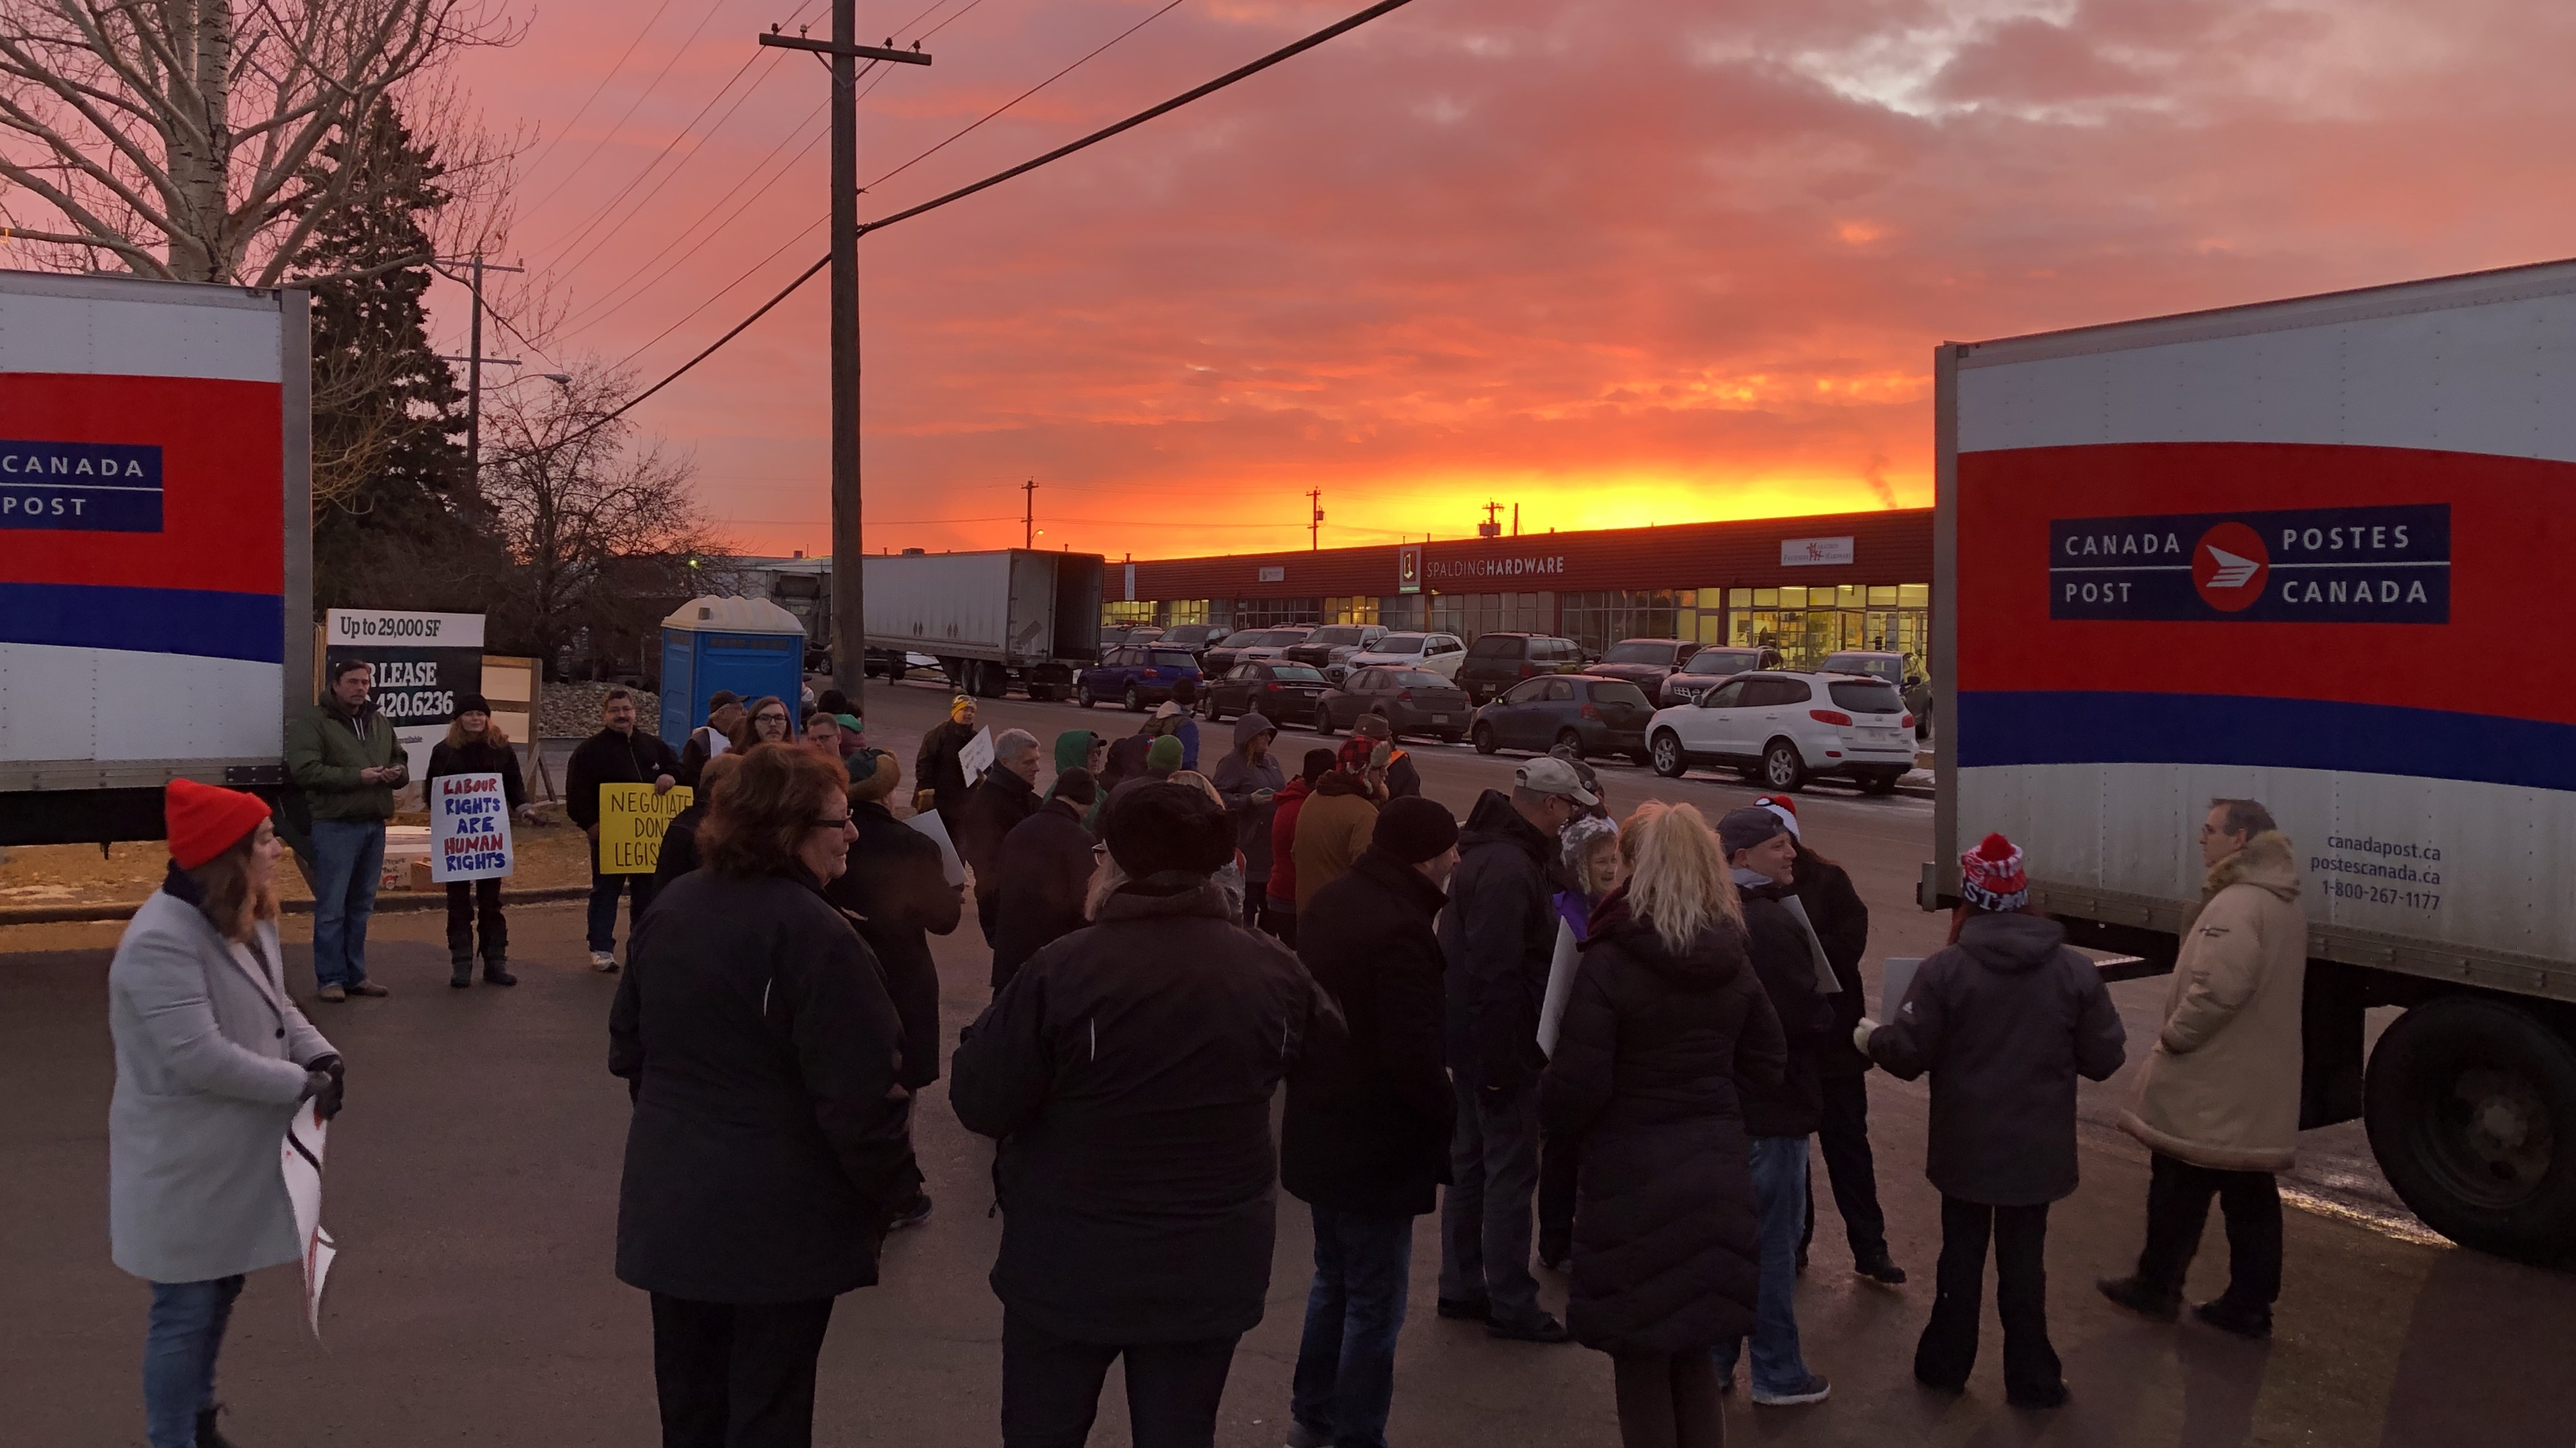 Holding the line: supporters picket Canada Post after back-to-work legislation